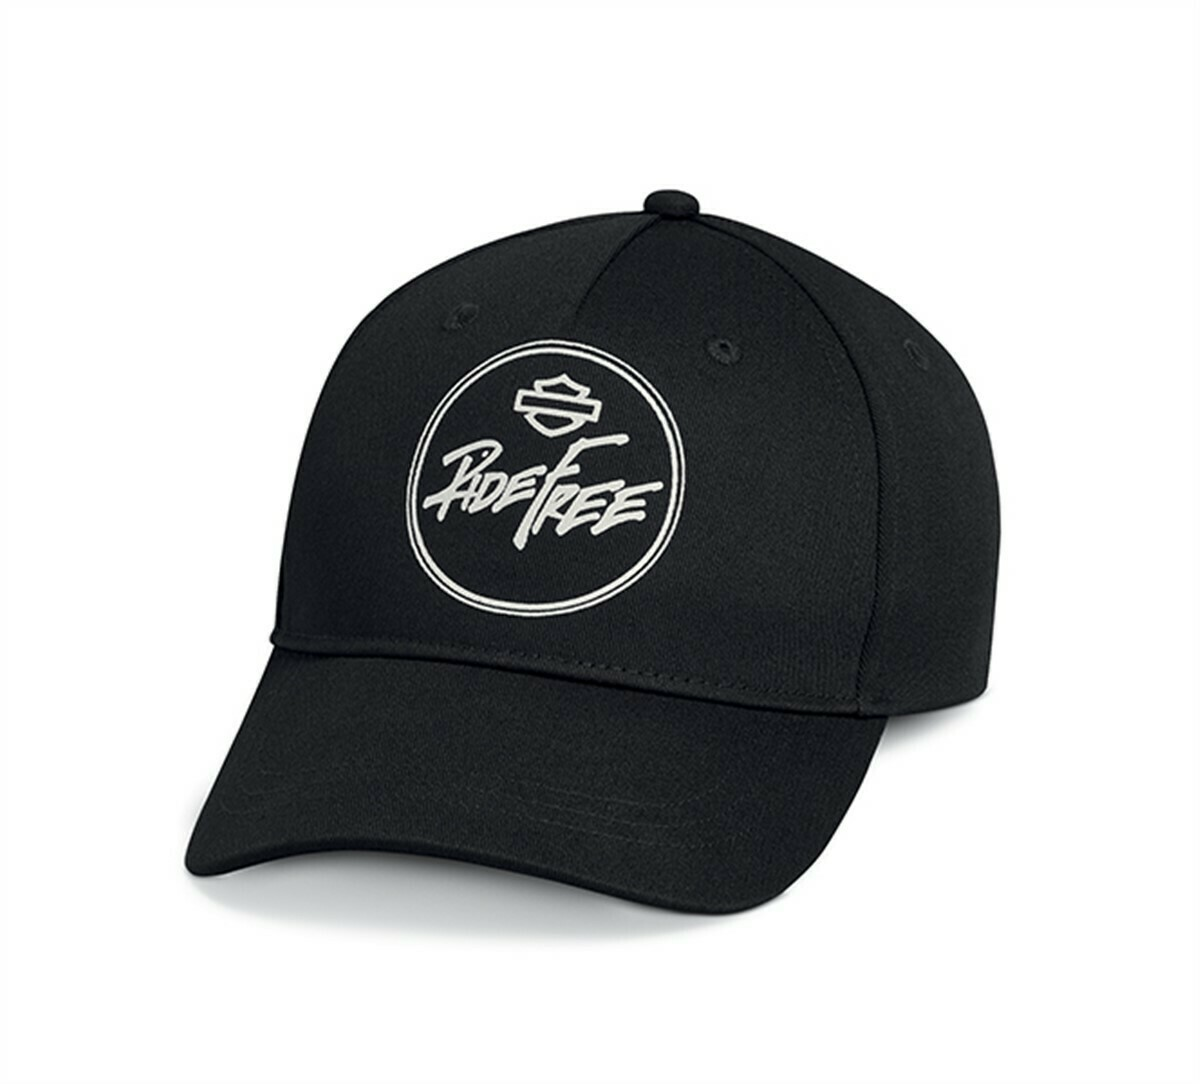 Cap Men Ride Free Adjustable - penned by WILLIE G™.